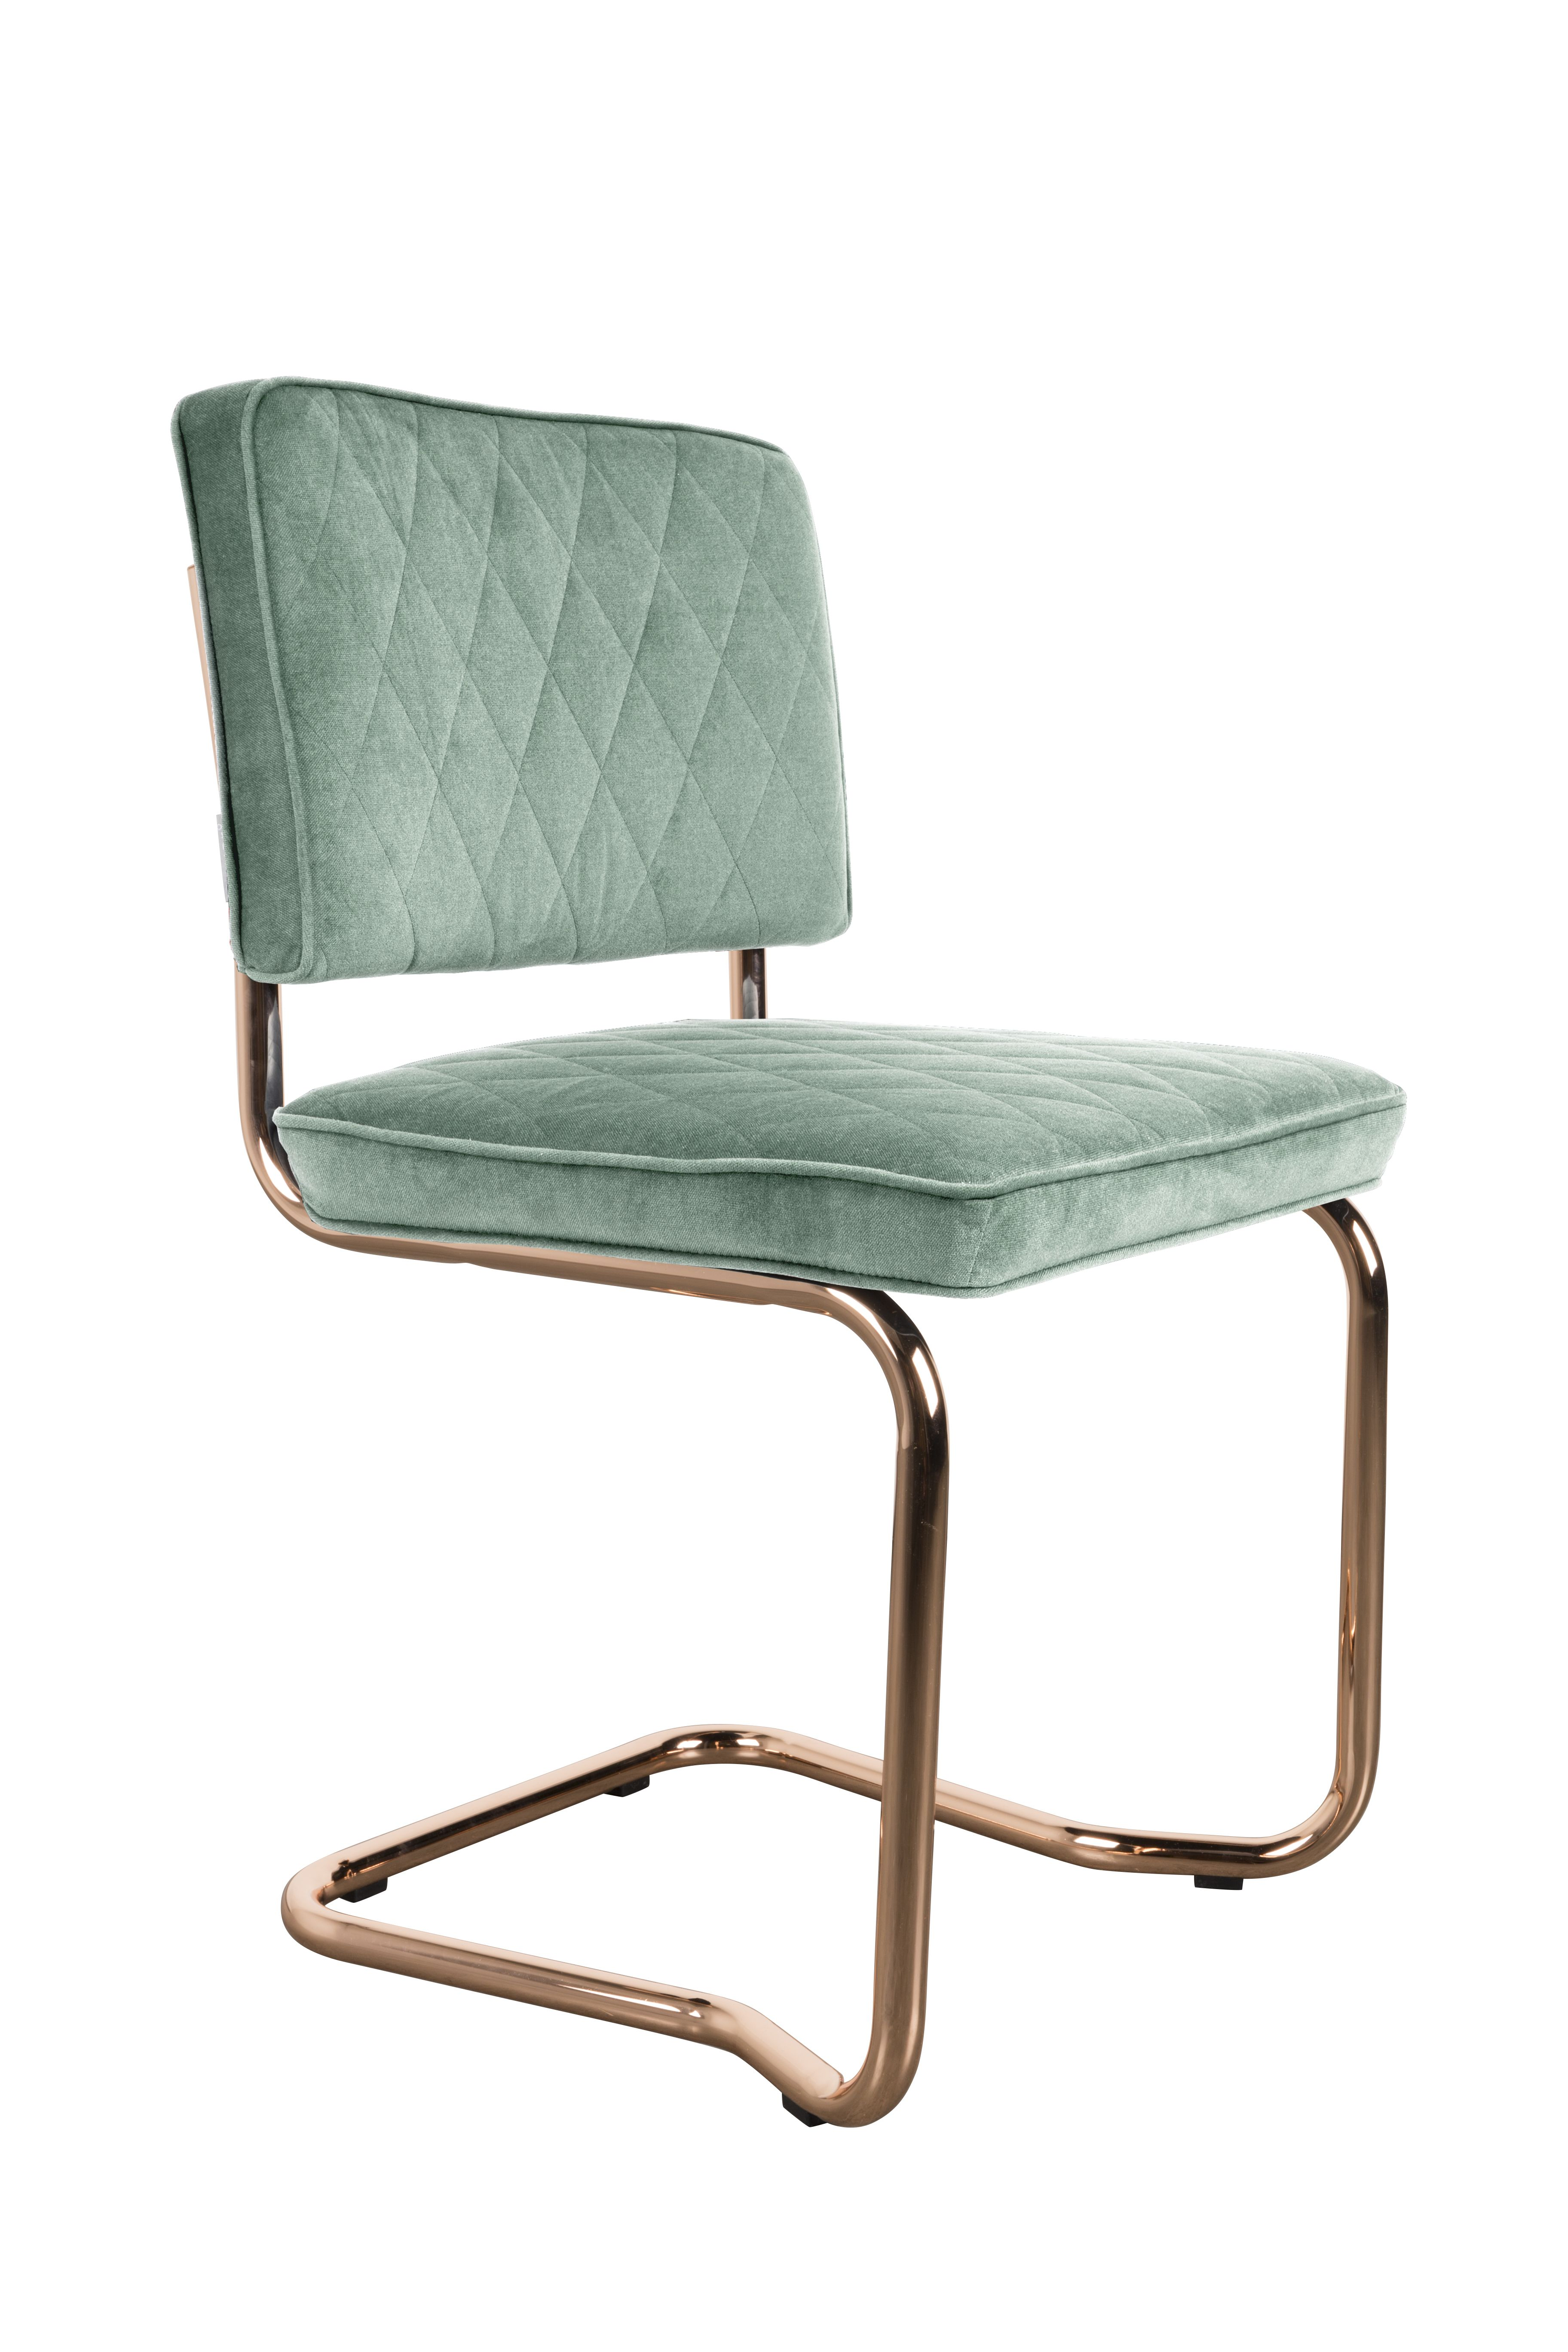 Diamond Kink chair   Interiors, Upholstery and Bedrooms